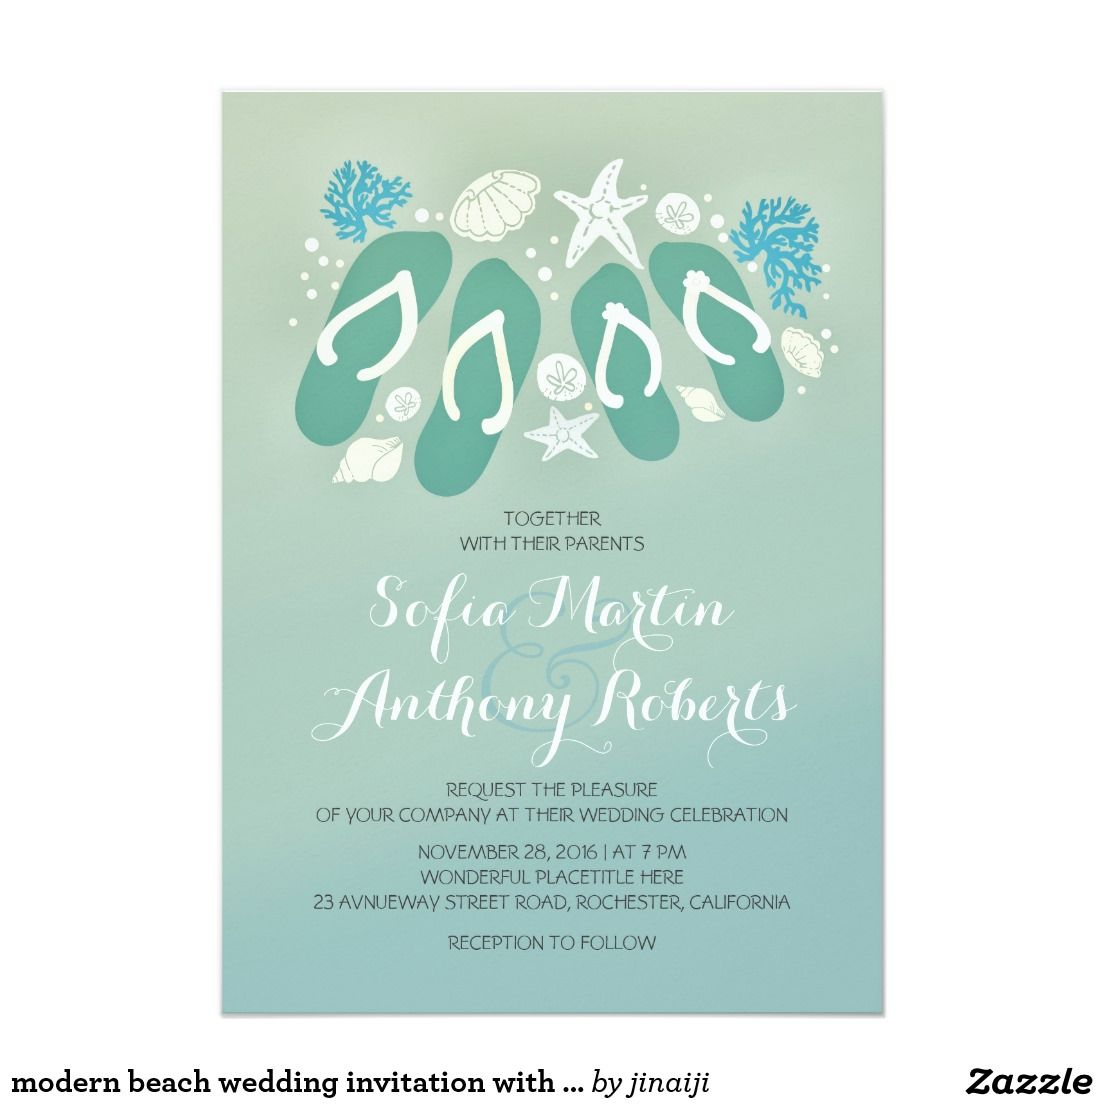 modern beach wedding invitation with flip flops | Invitations ...